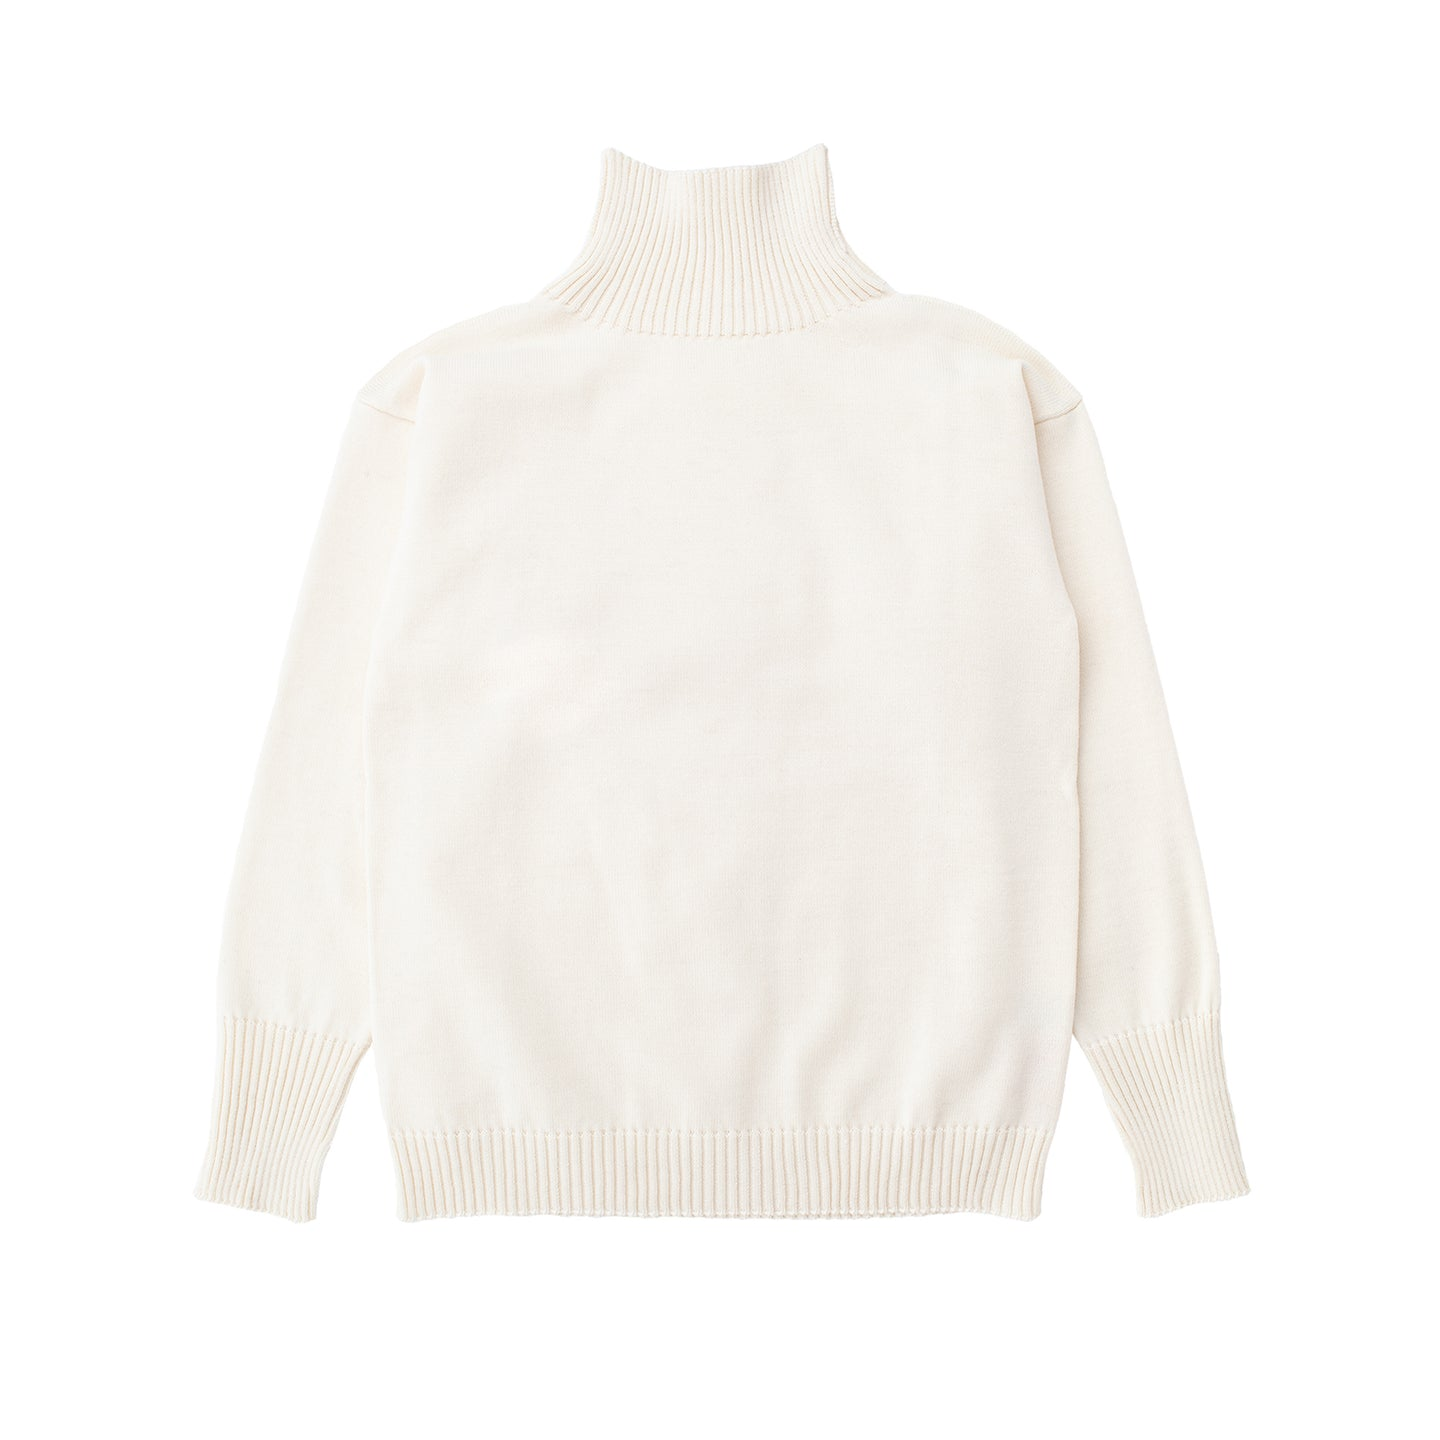 Seaman Turtleneck - Off-White